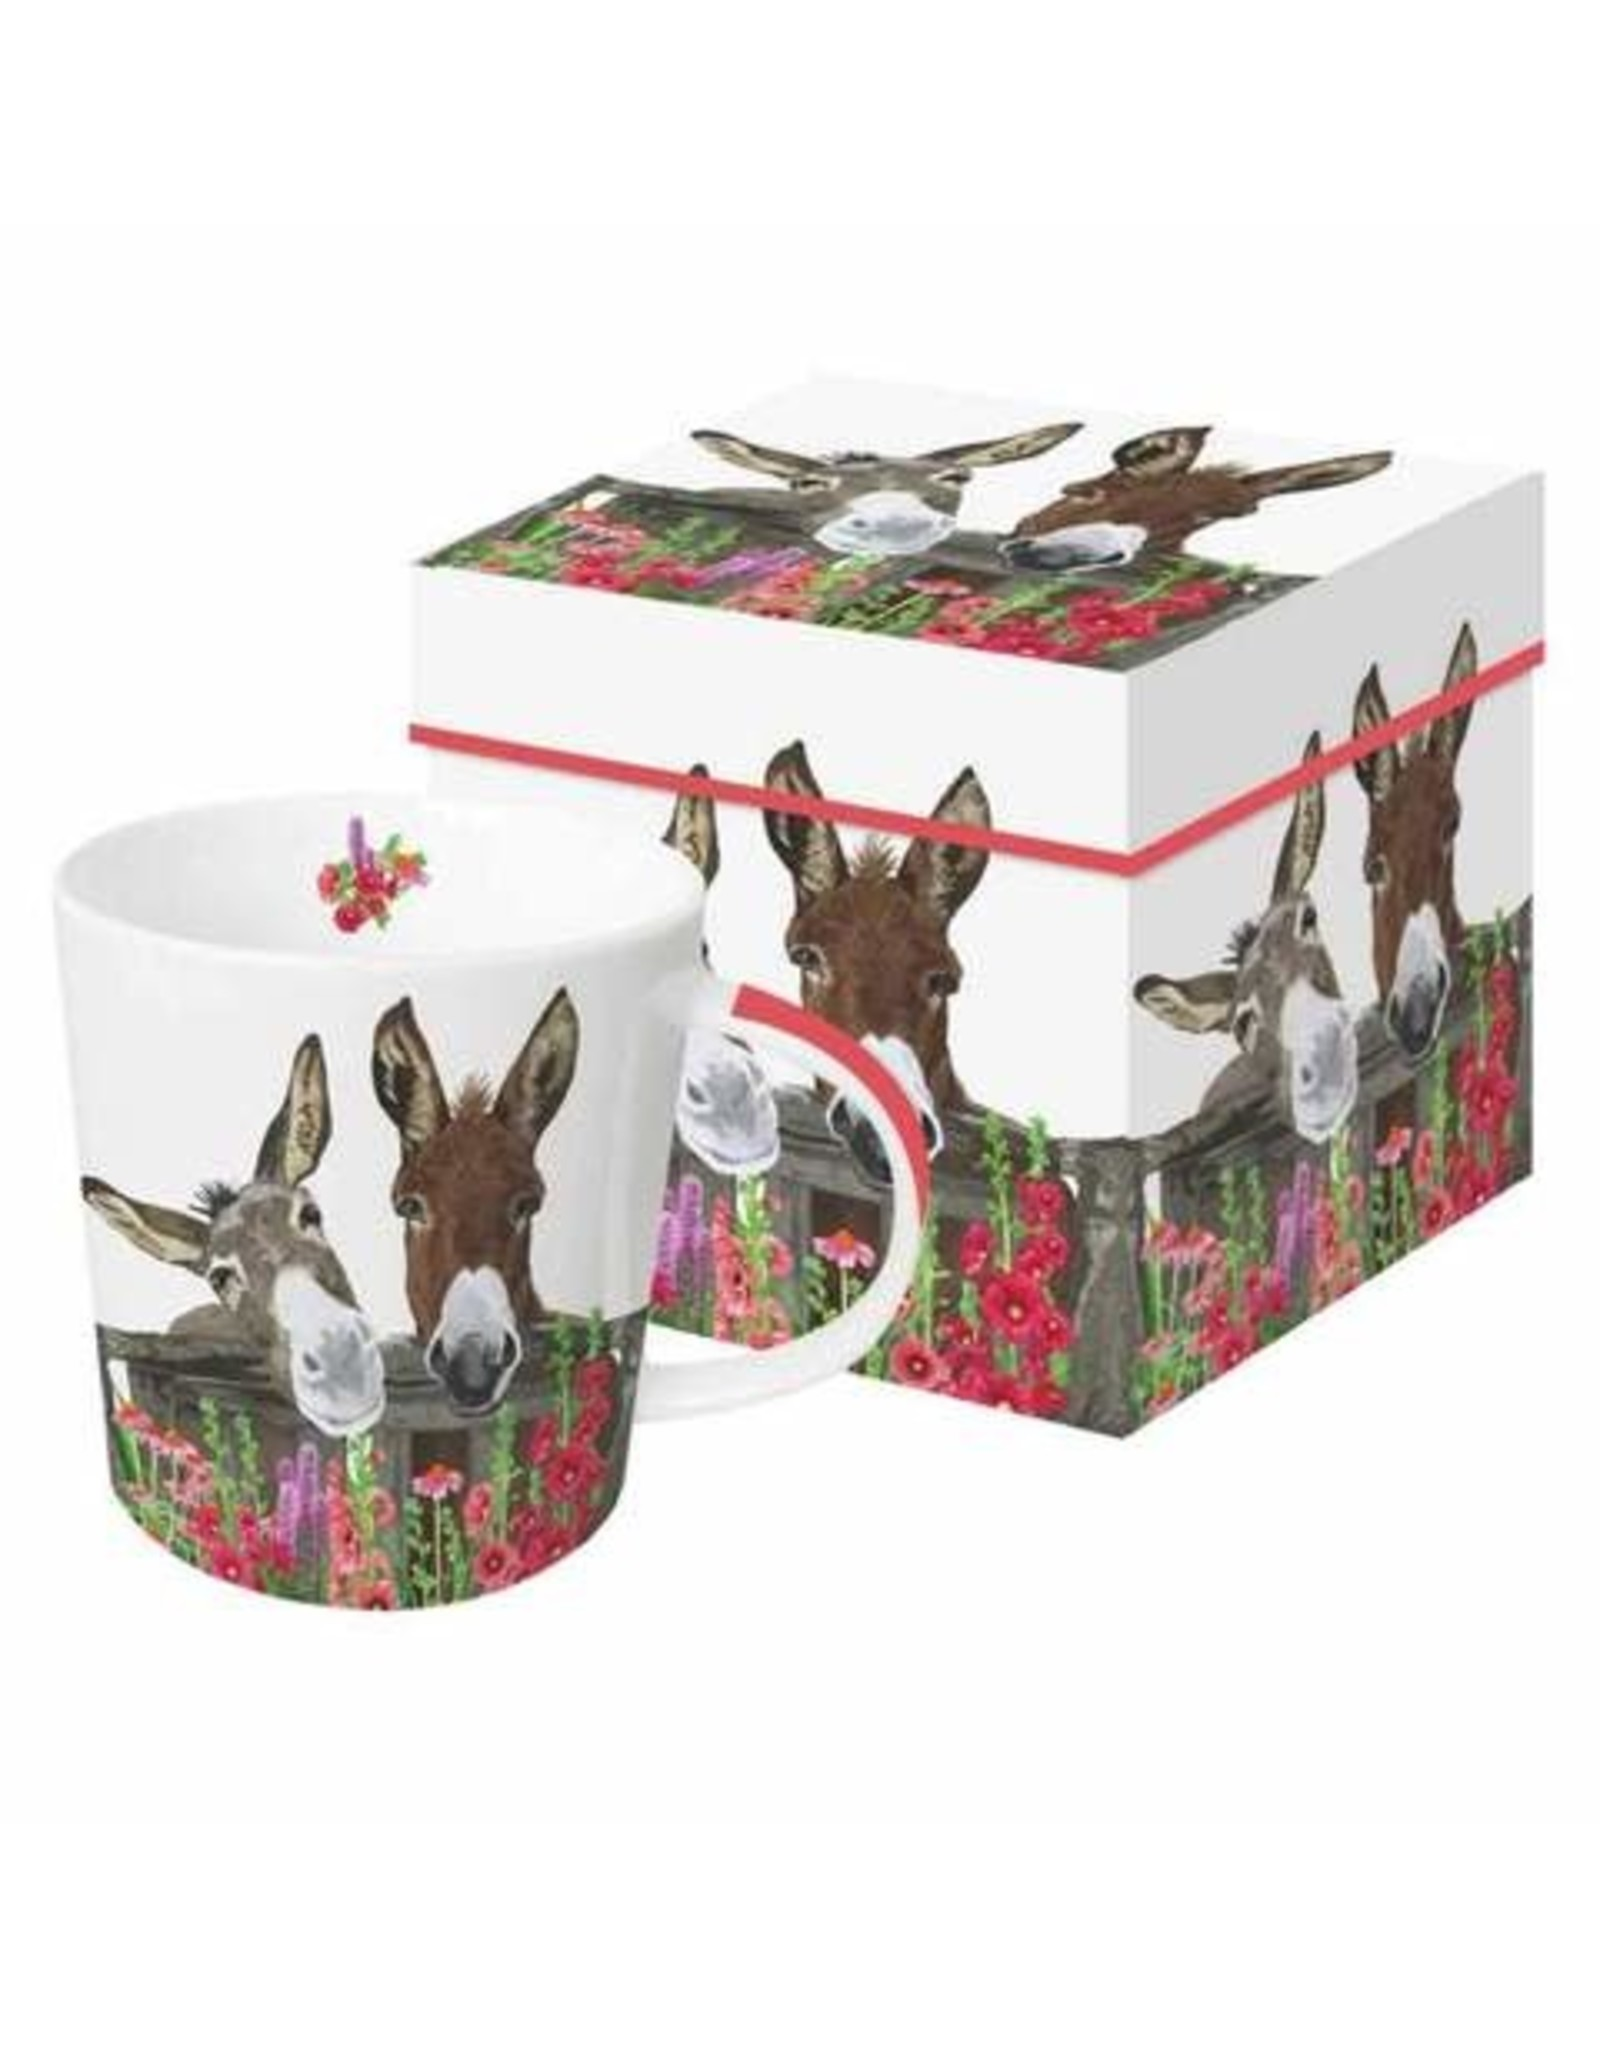 Paper Products Designs PEANUT BUTTER & JELLY MUG IN GIFT BOX